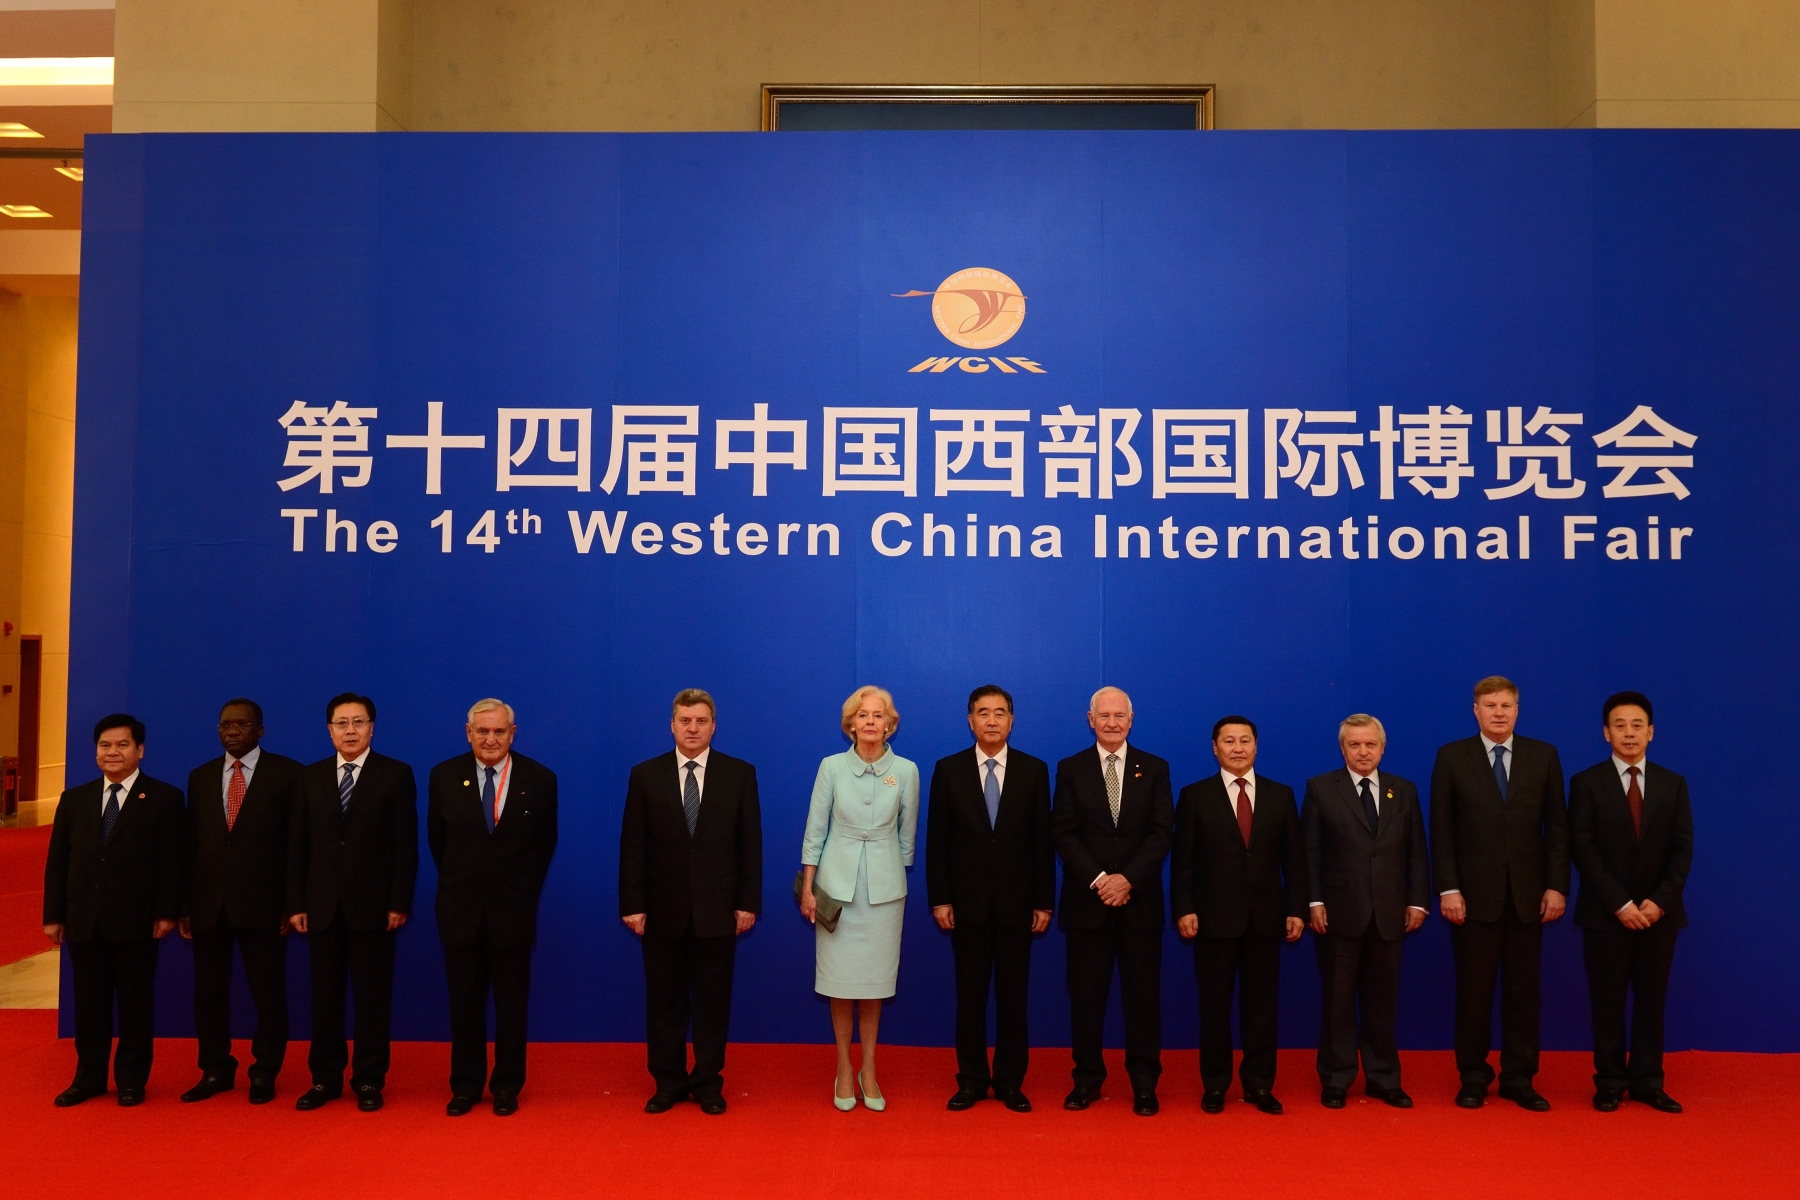 On October 23, 2013, His Excellency attended the 6th Western China International Co-operation Forum, an event held during the Western China International Fair.